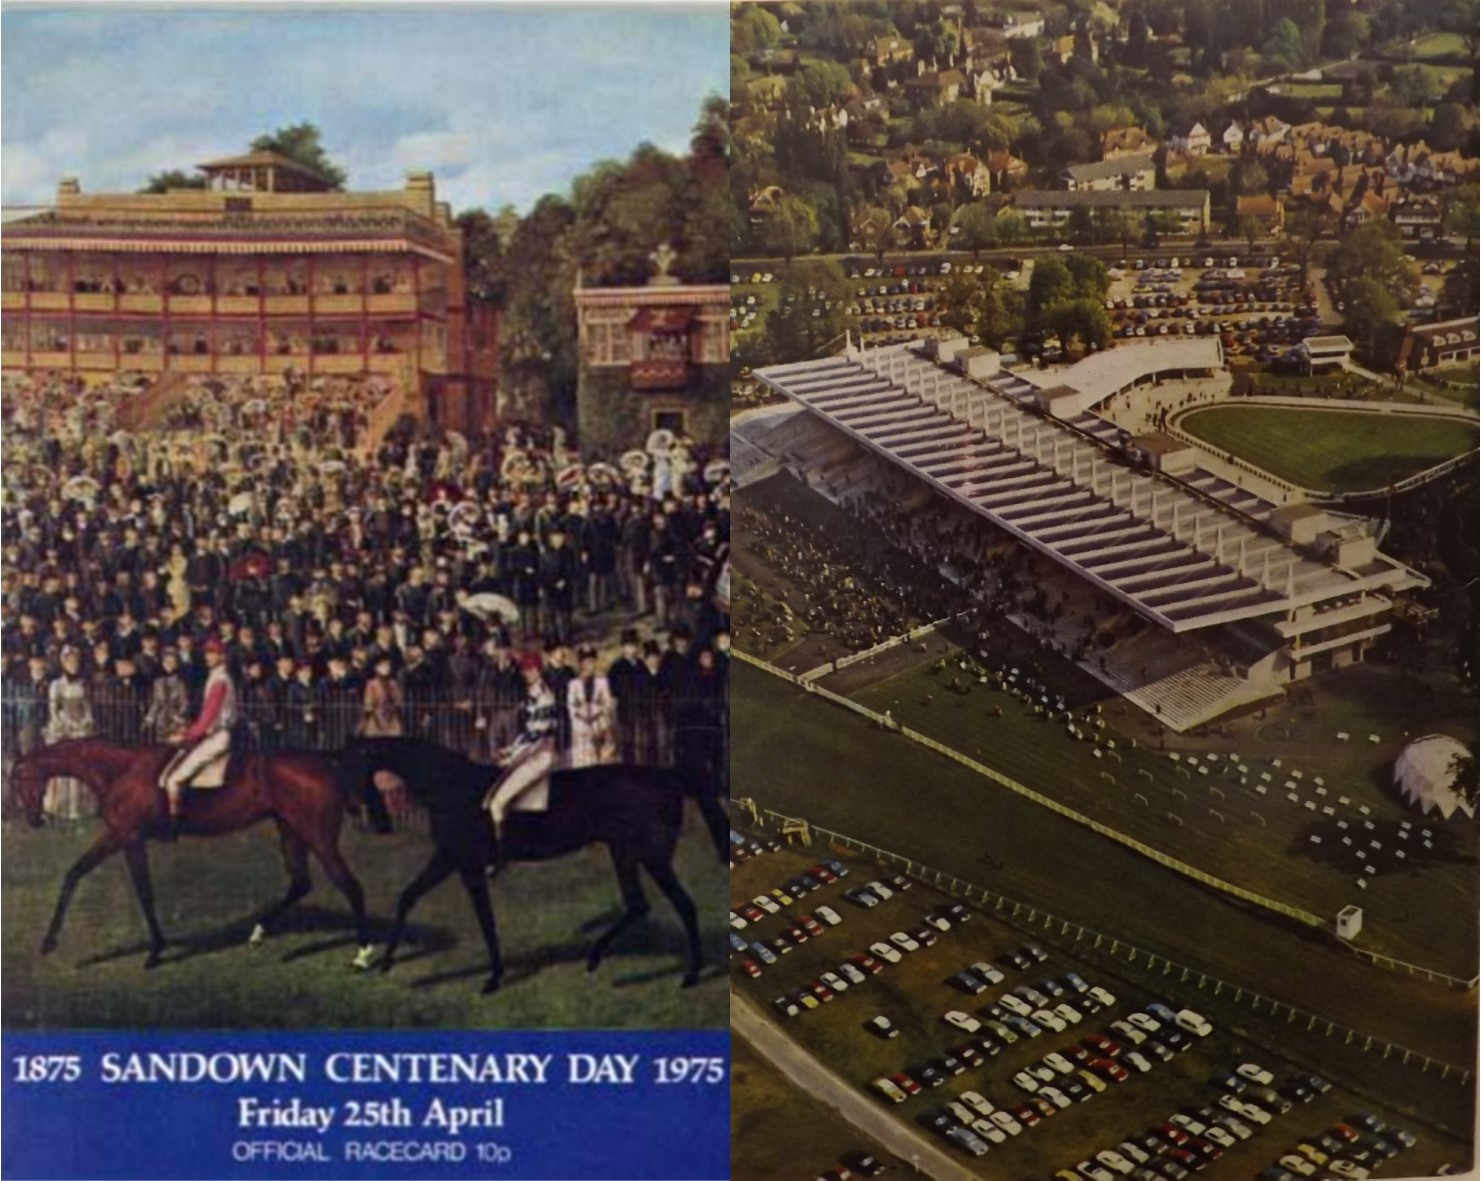 Sandown centenary day racecard, 1975, front cover (left) and back cover (right).